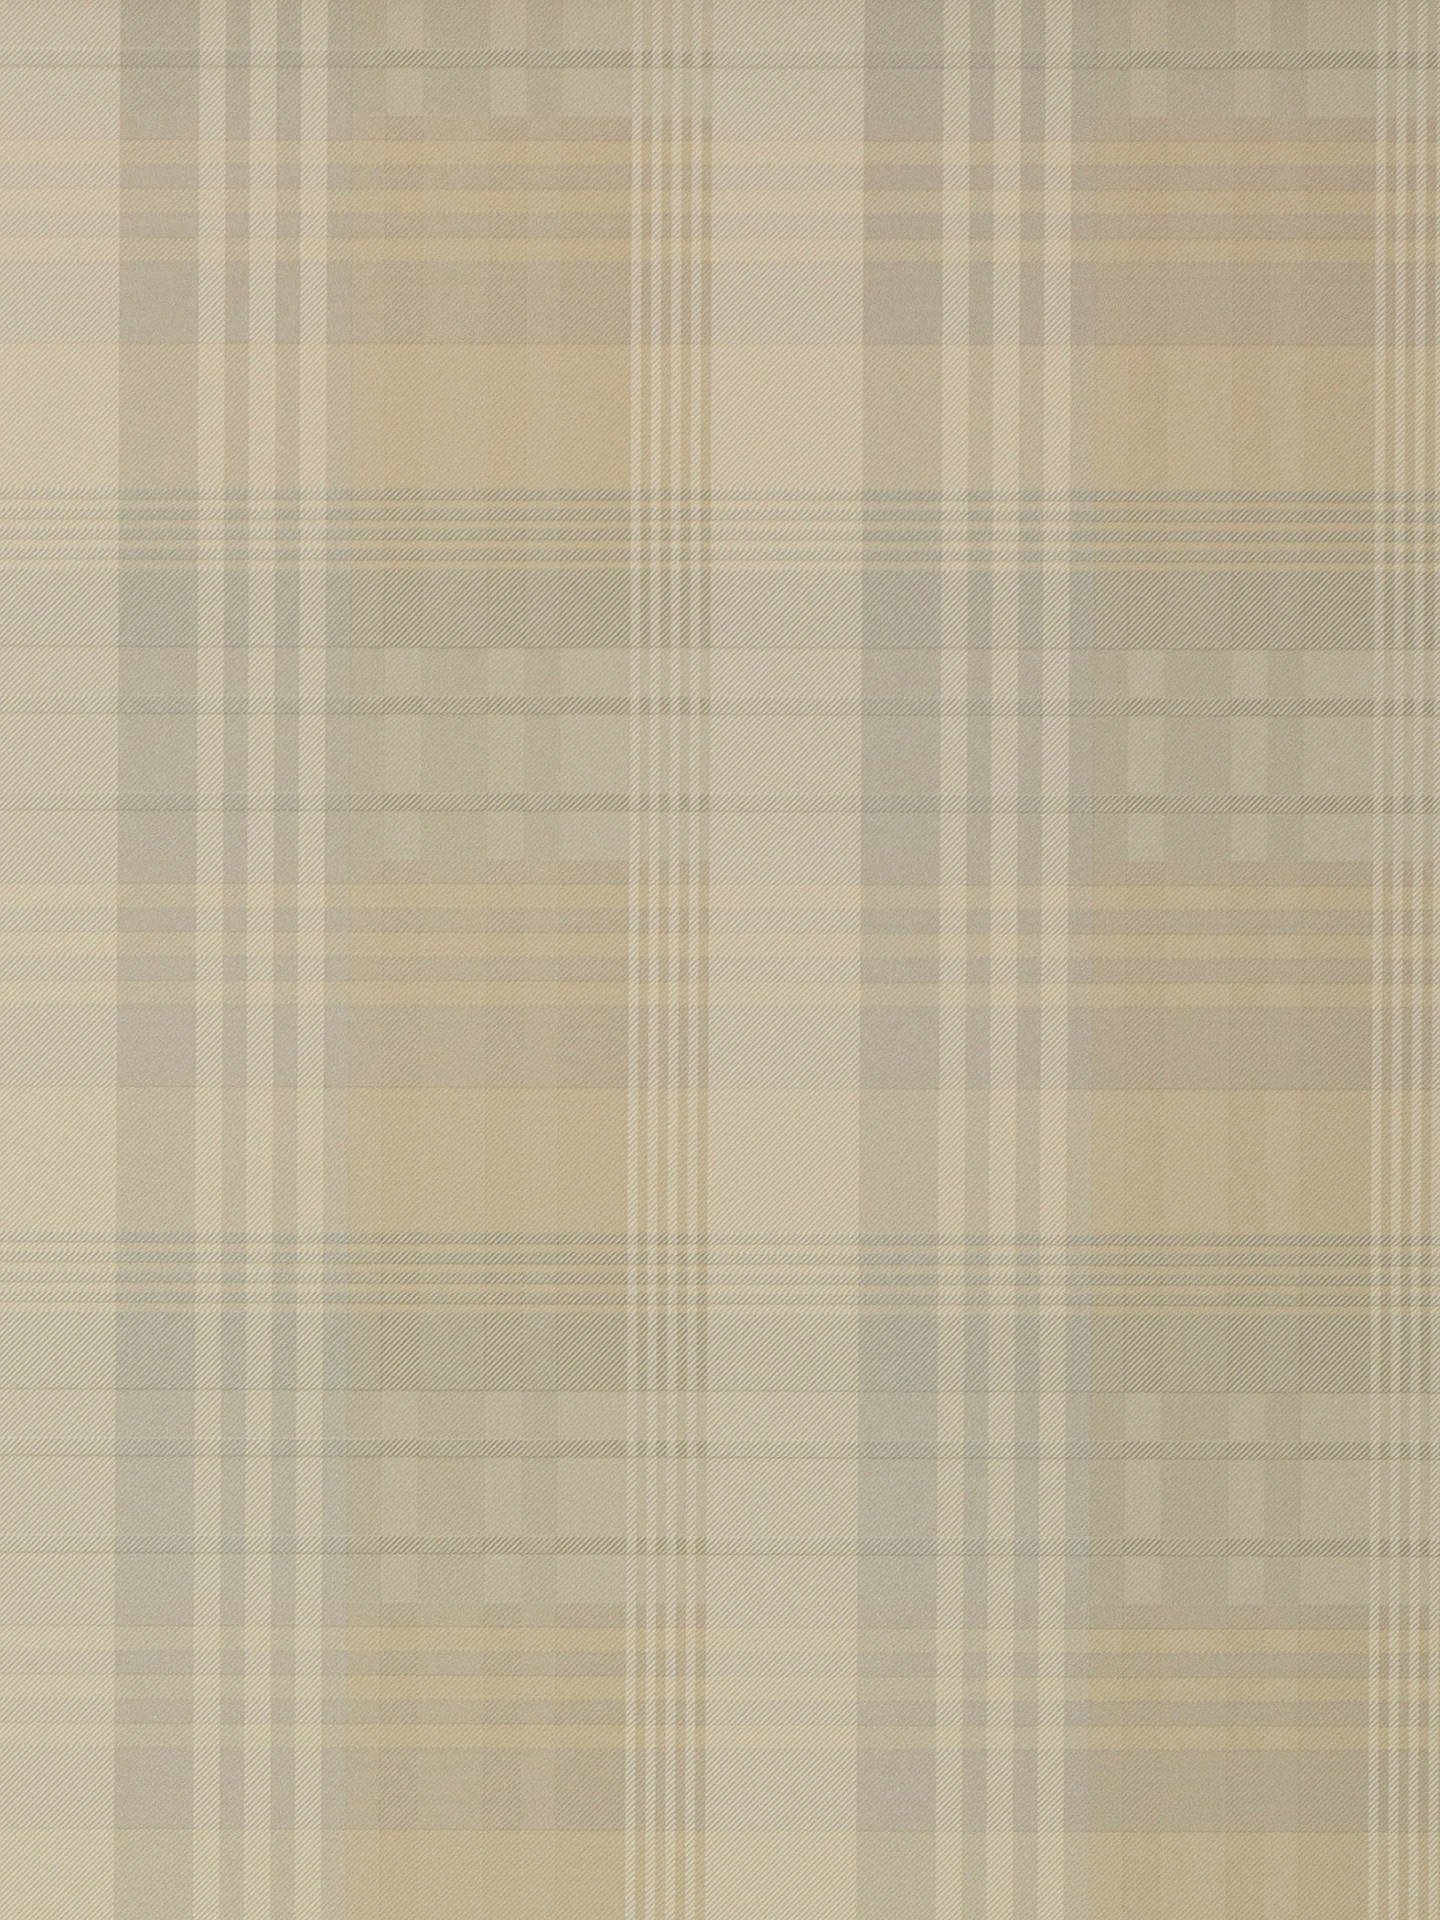 BuyMulberry Home Ancient Tartan Paste the Wall Wallpaper, FG079.J102 Online at johnlewis.com